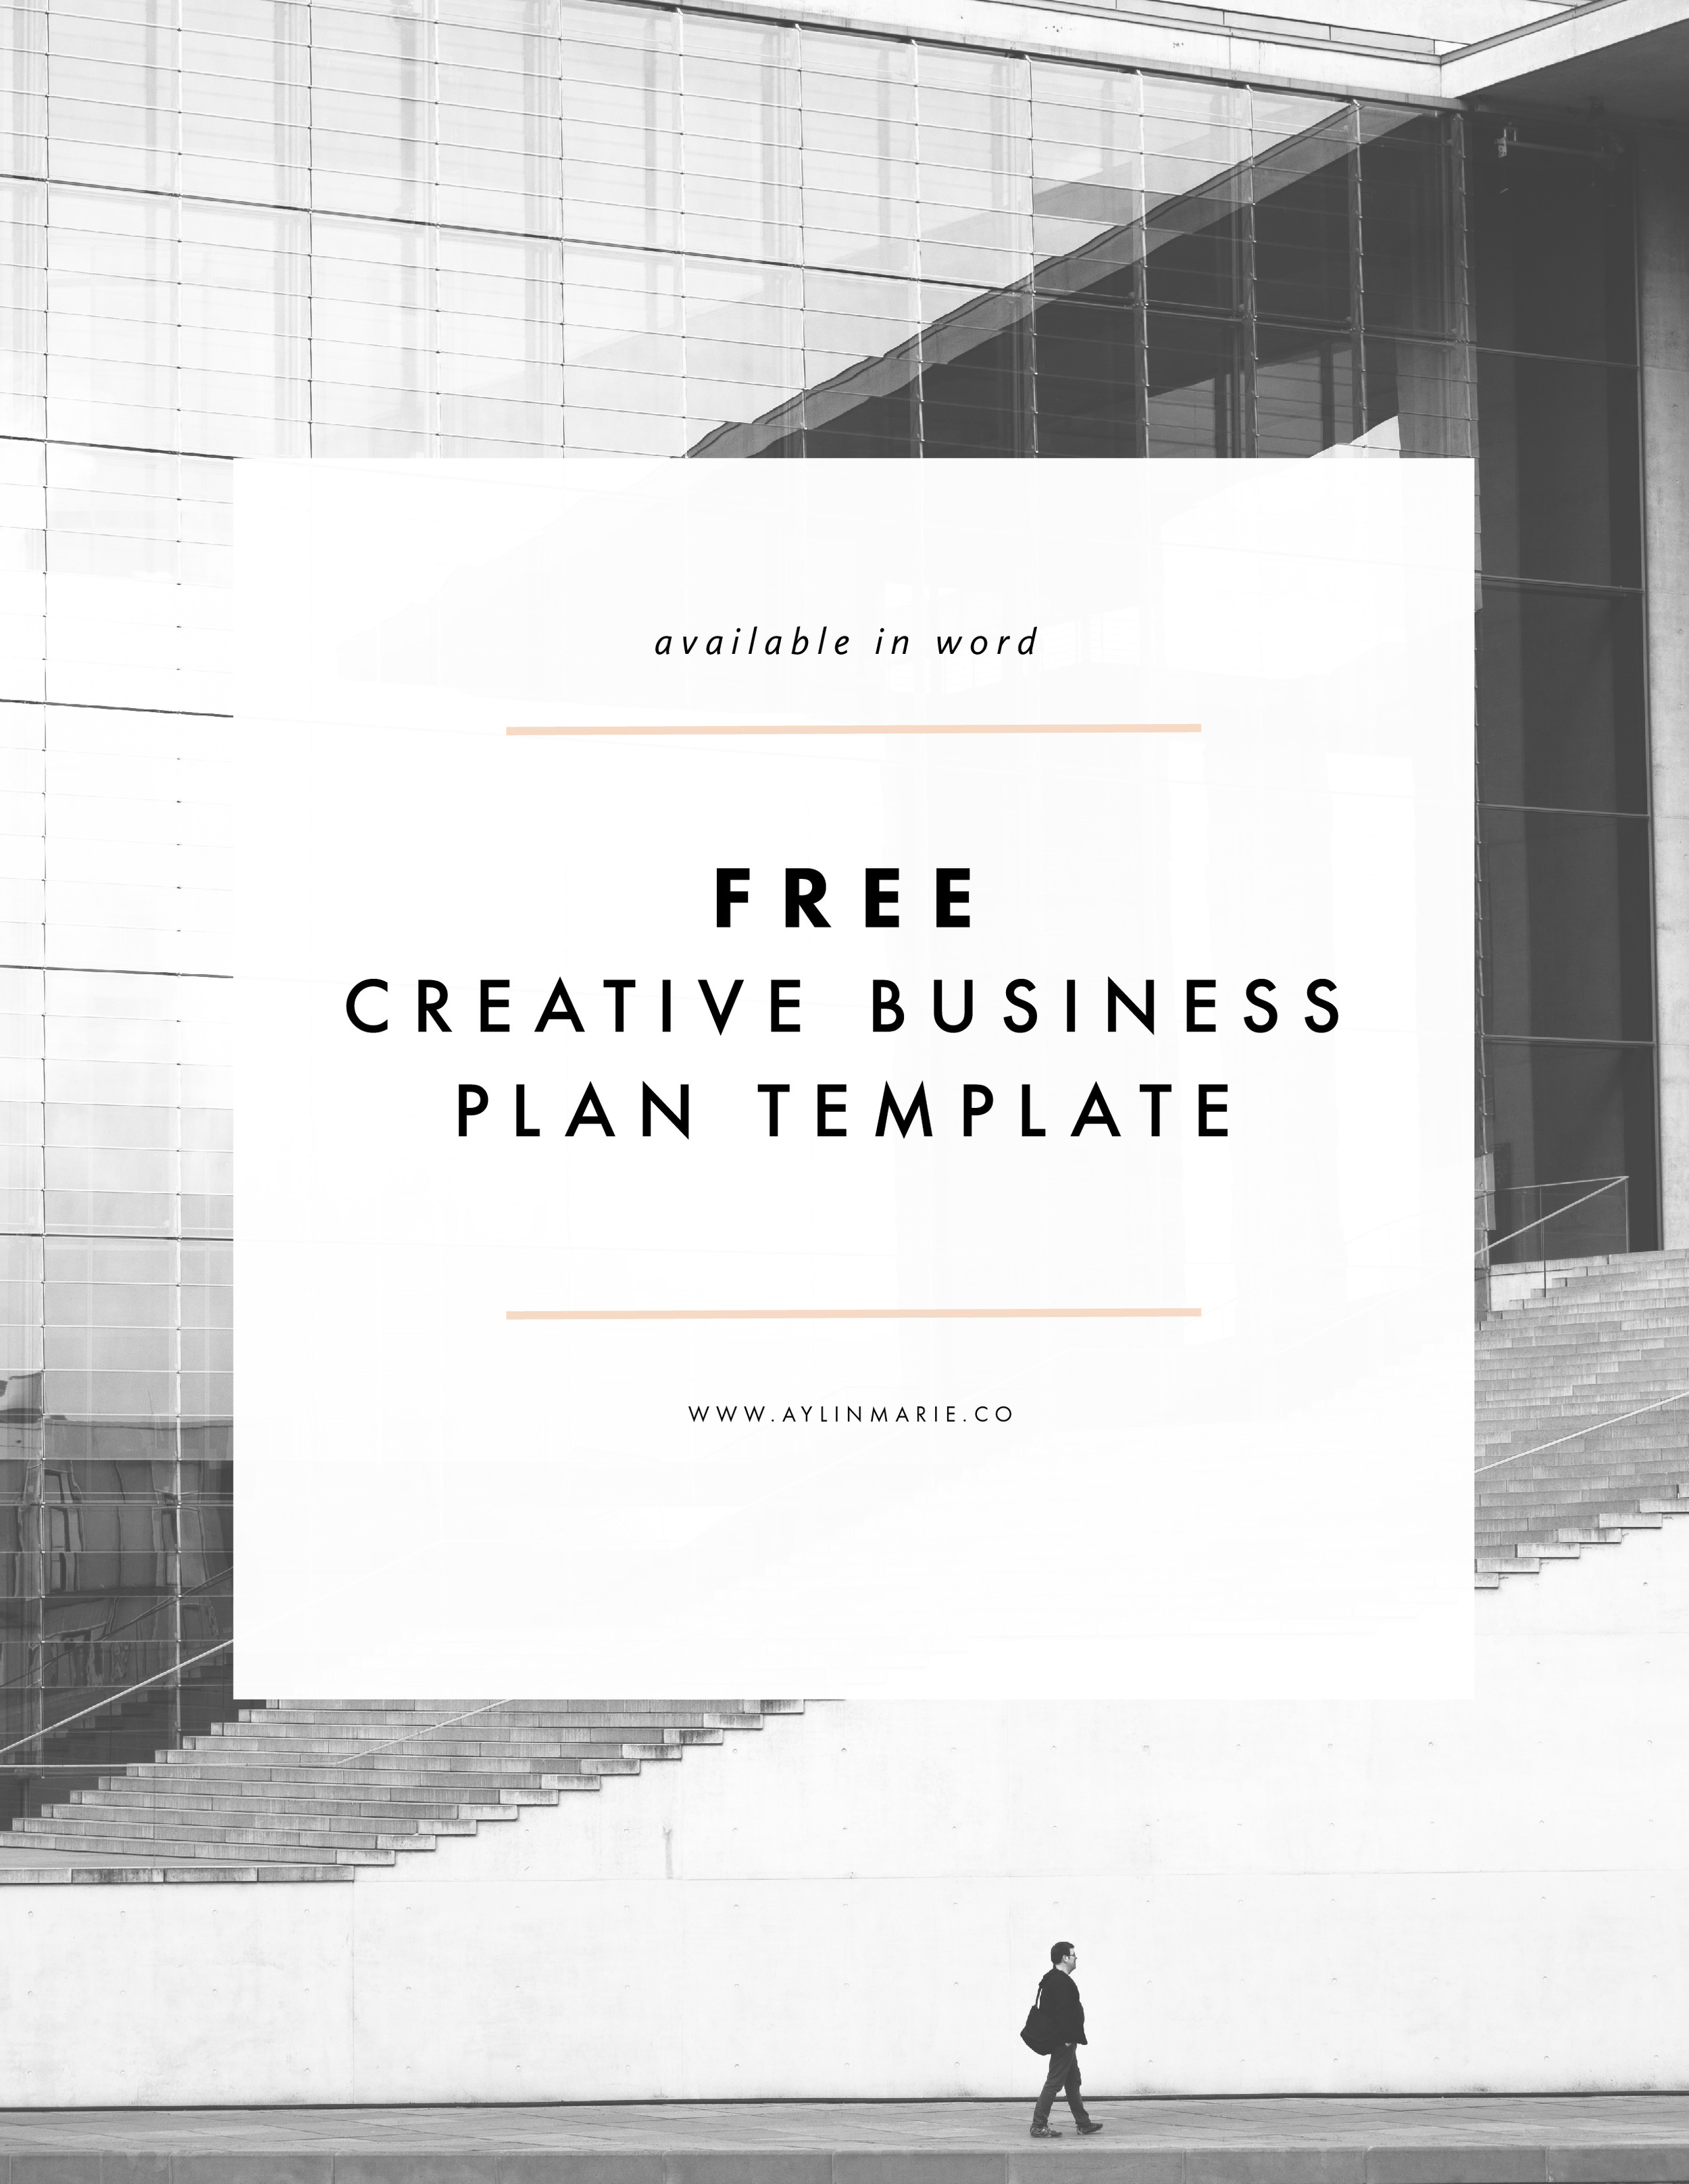 Freebie creative business plan template aylin marie freebie creative business plan template flashek Choice Image